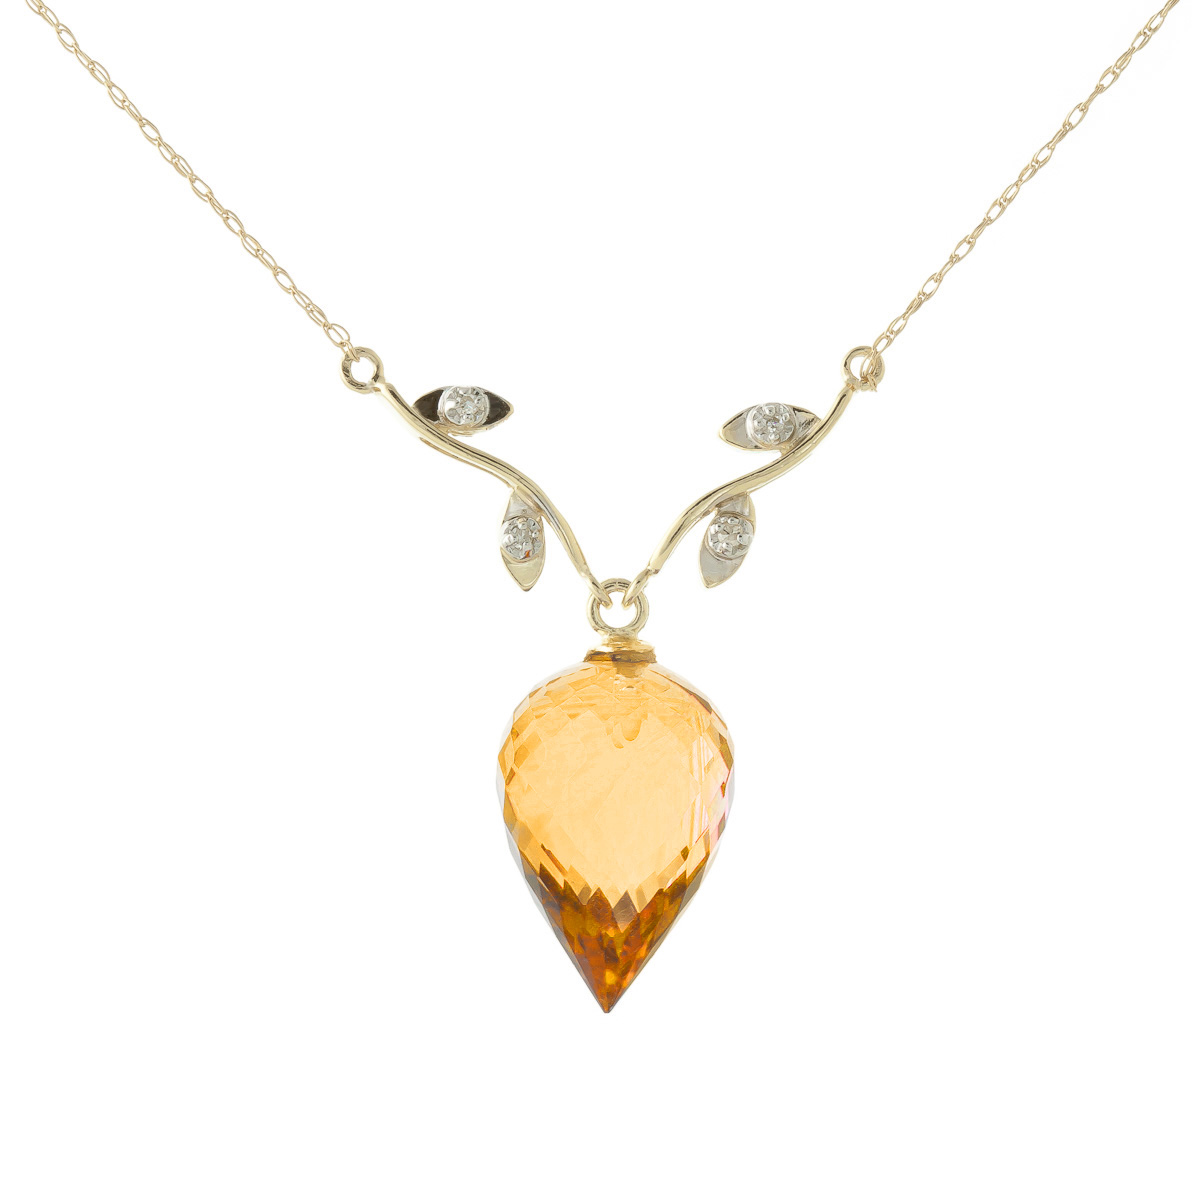 Citrine and Diamond Pendant Necklace 9.5ct in 9ct Gold